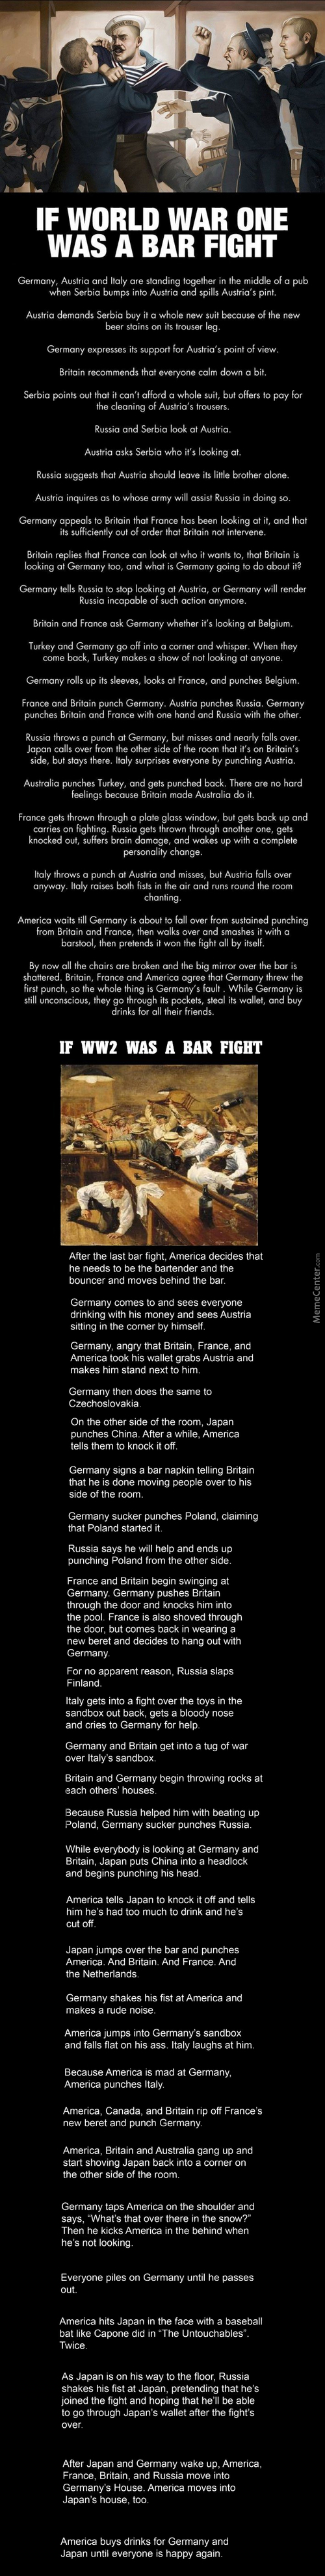 If The World Wars Were Bar Fights